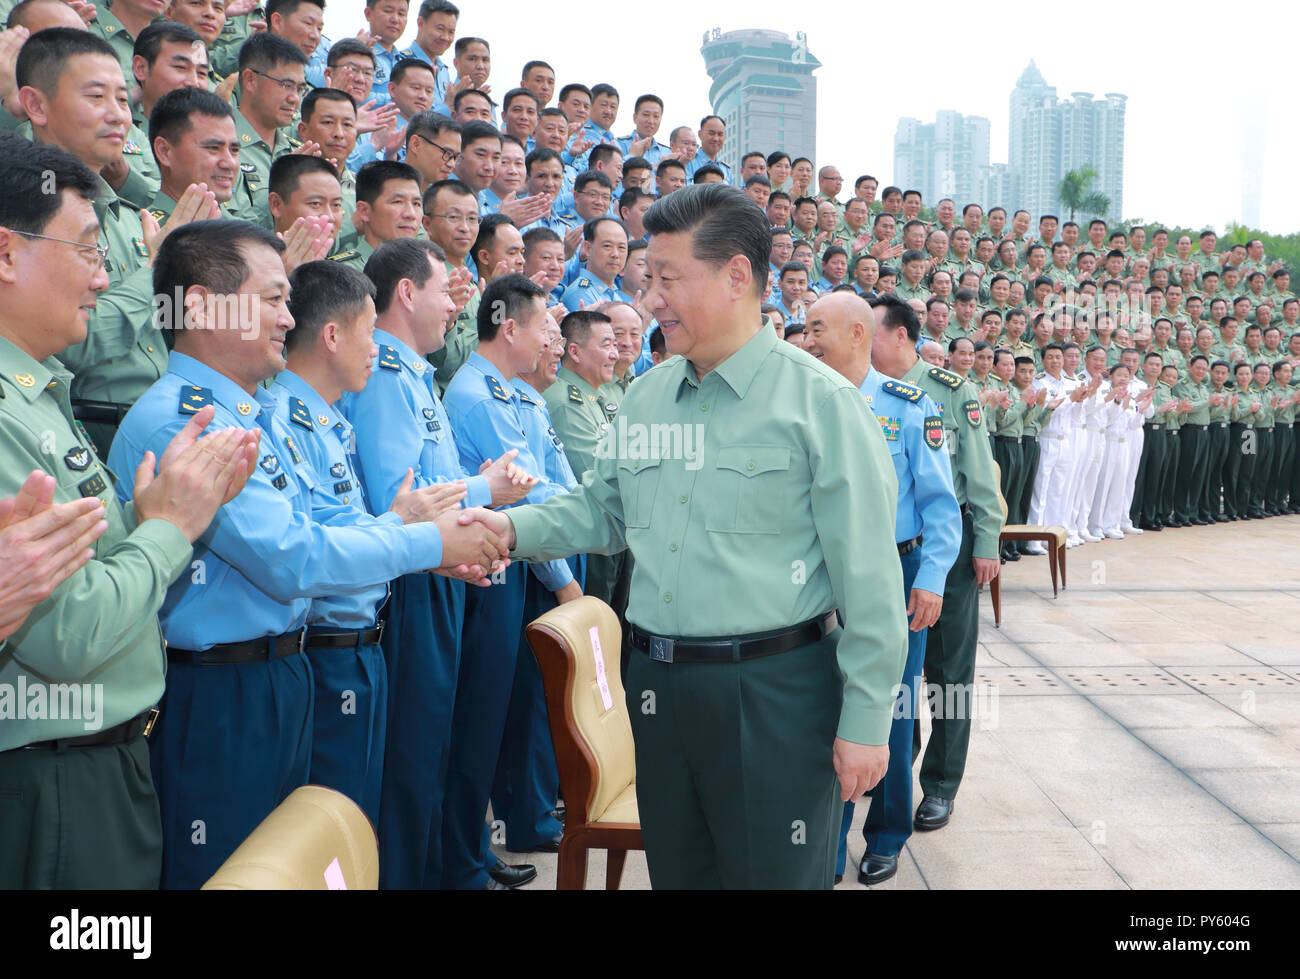 (181026) -- GUANGZHOU, Oct. 26, 2018 (Xinhua) -- Chinese President Xi Jinping, also general secretary of the Communist Party of China Central Committee and chairman of the Central Military Commission, shakes hands with military officers as he inspects the Southern Theater Command of the People's Liberation Army, Oct. 25, 2018.   (Xinhua/Li Gang) (wyo) - Stock Image